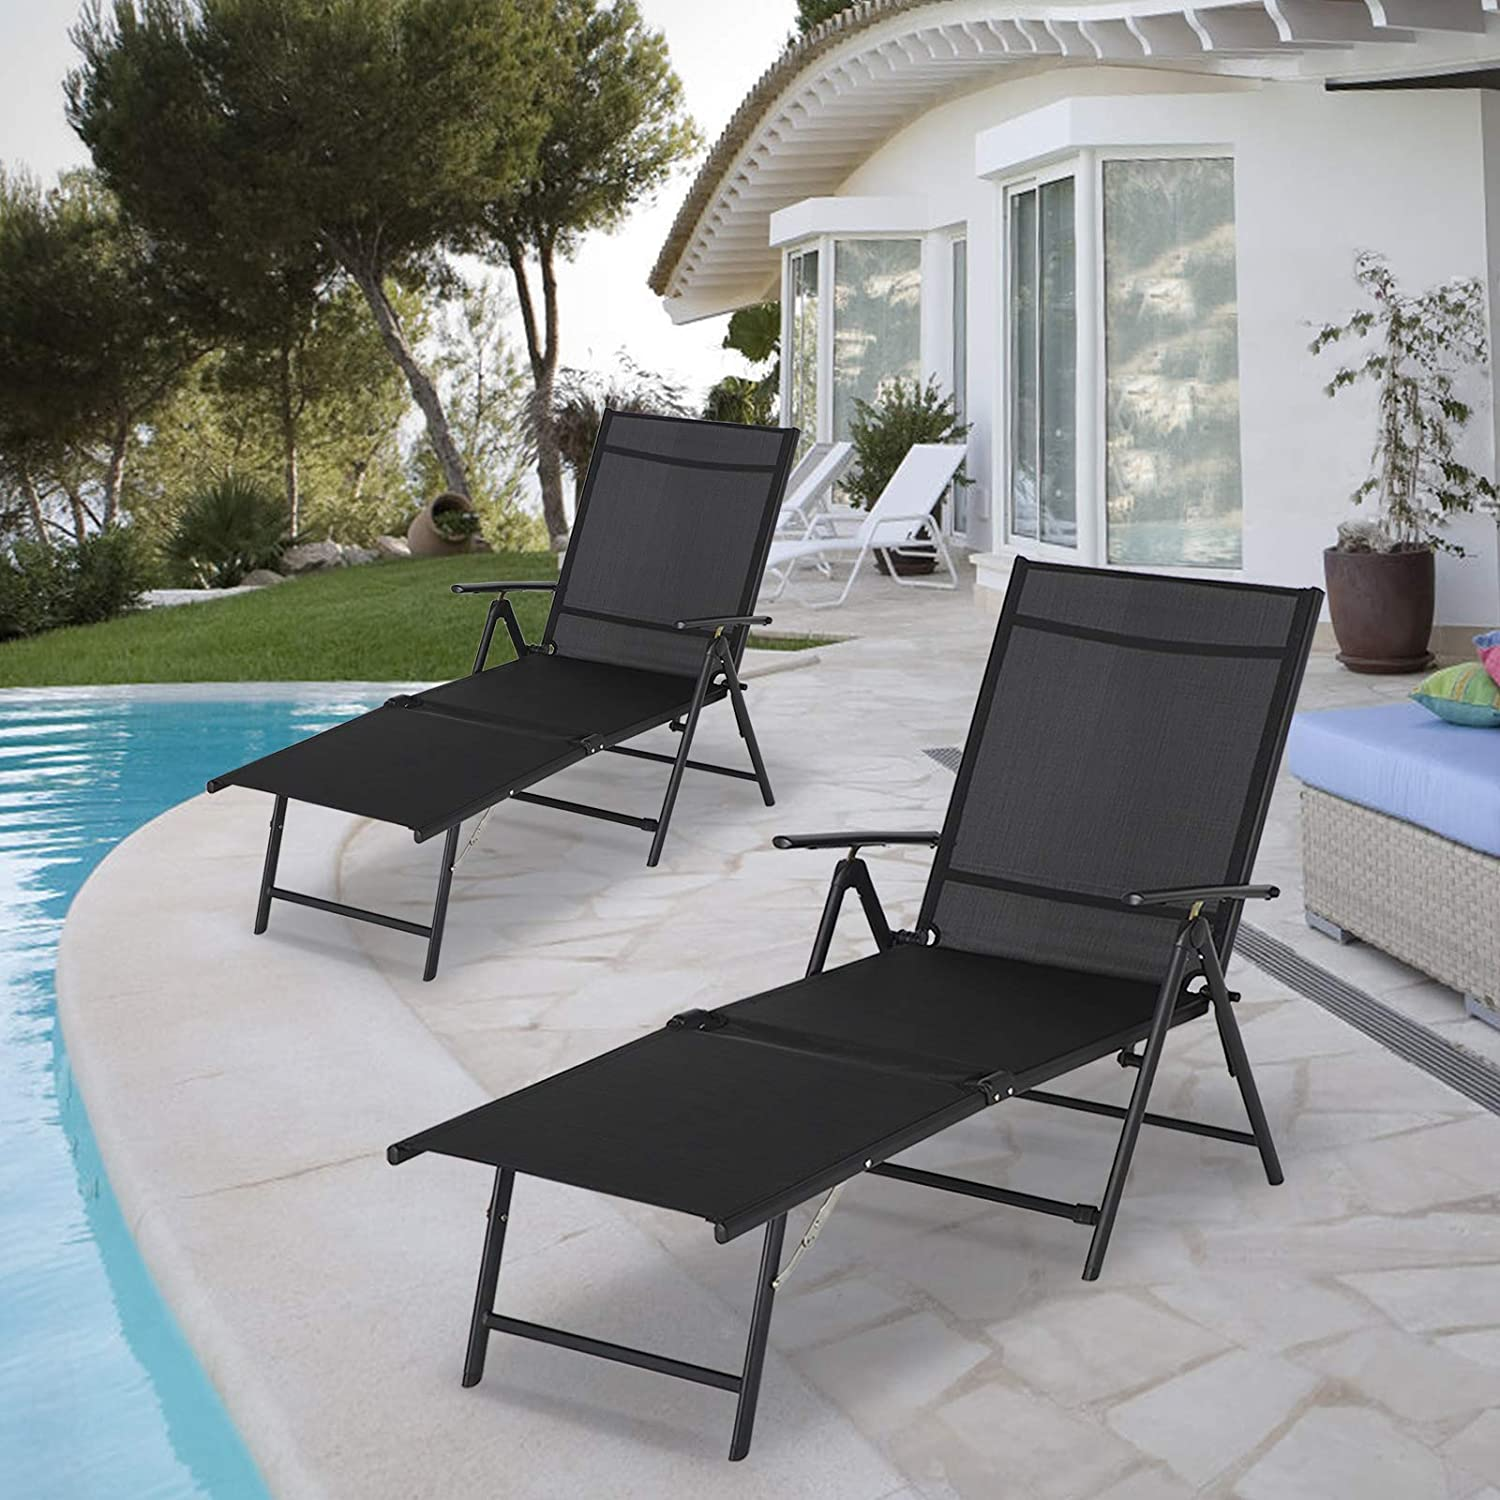 Esright Outdoor Chaise Clearance SALE Limited Challenge the lowest price of Japan ☆ time Lounge Chair Folding of Set Textiline 2